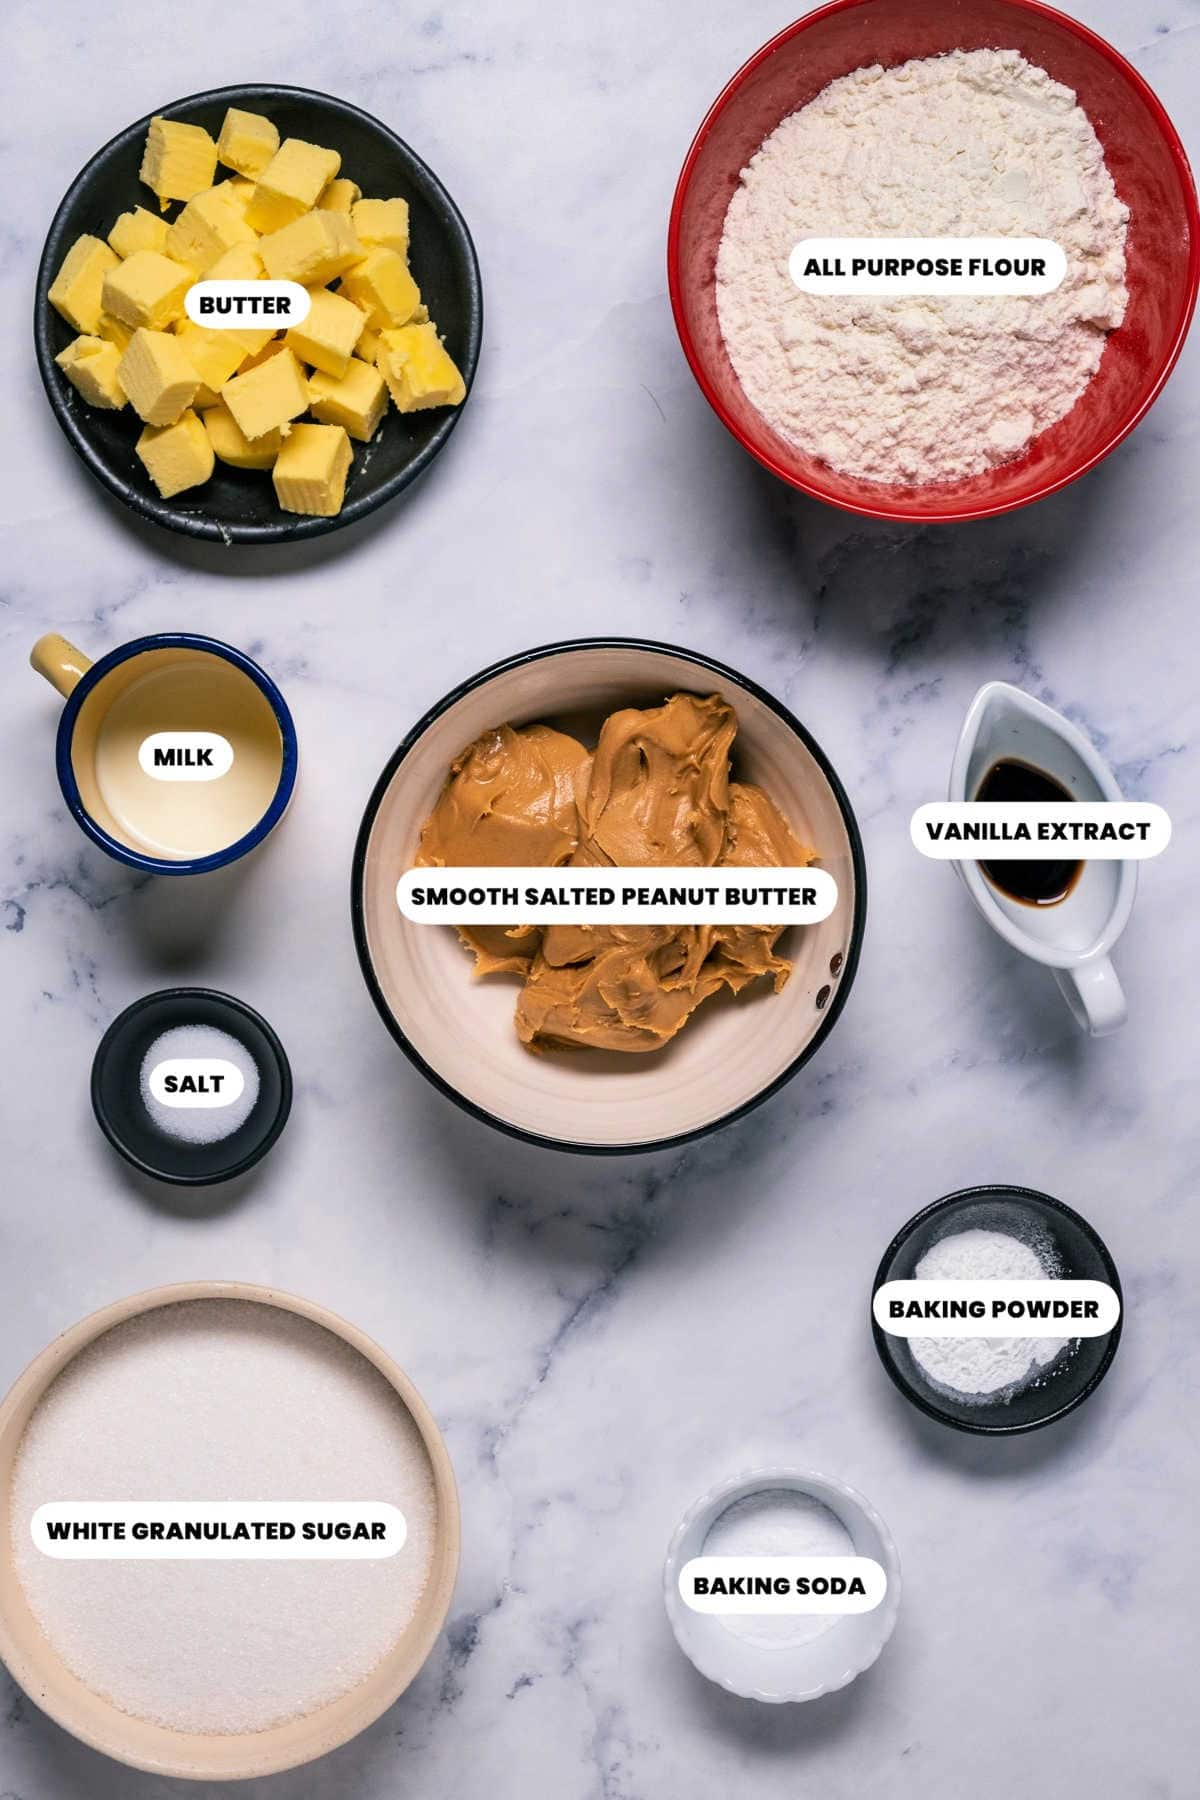 Photo of the ingredients needed to make eggless peanut butter cookies.